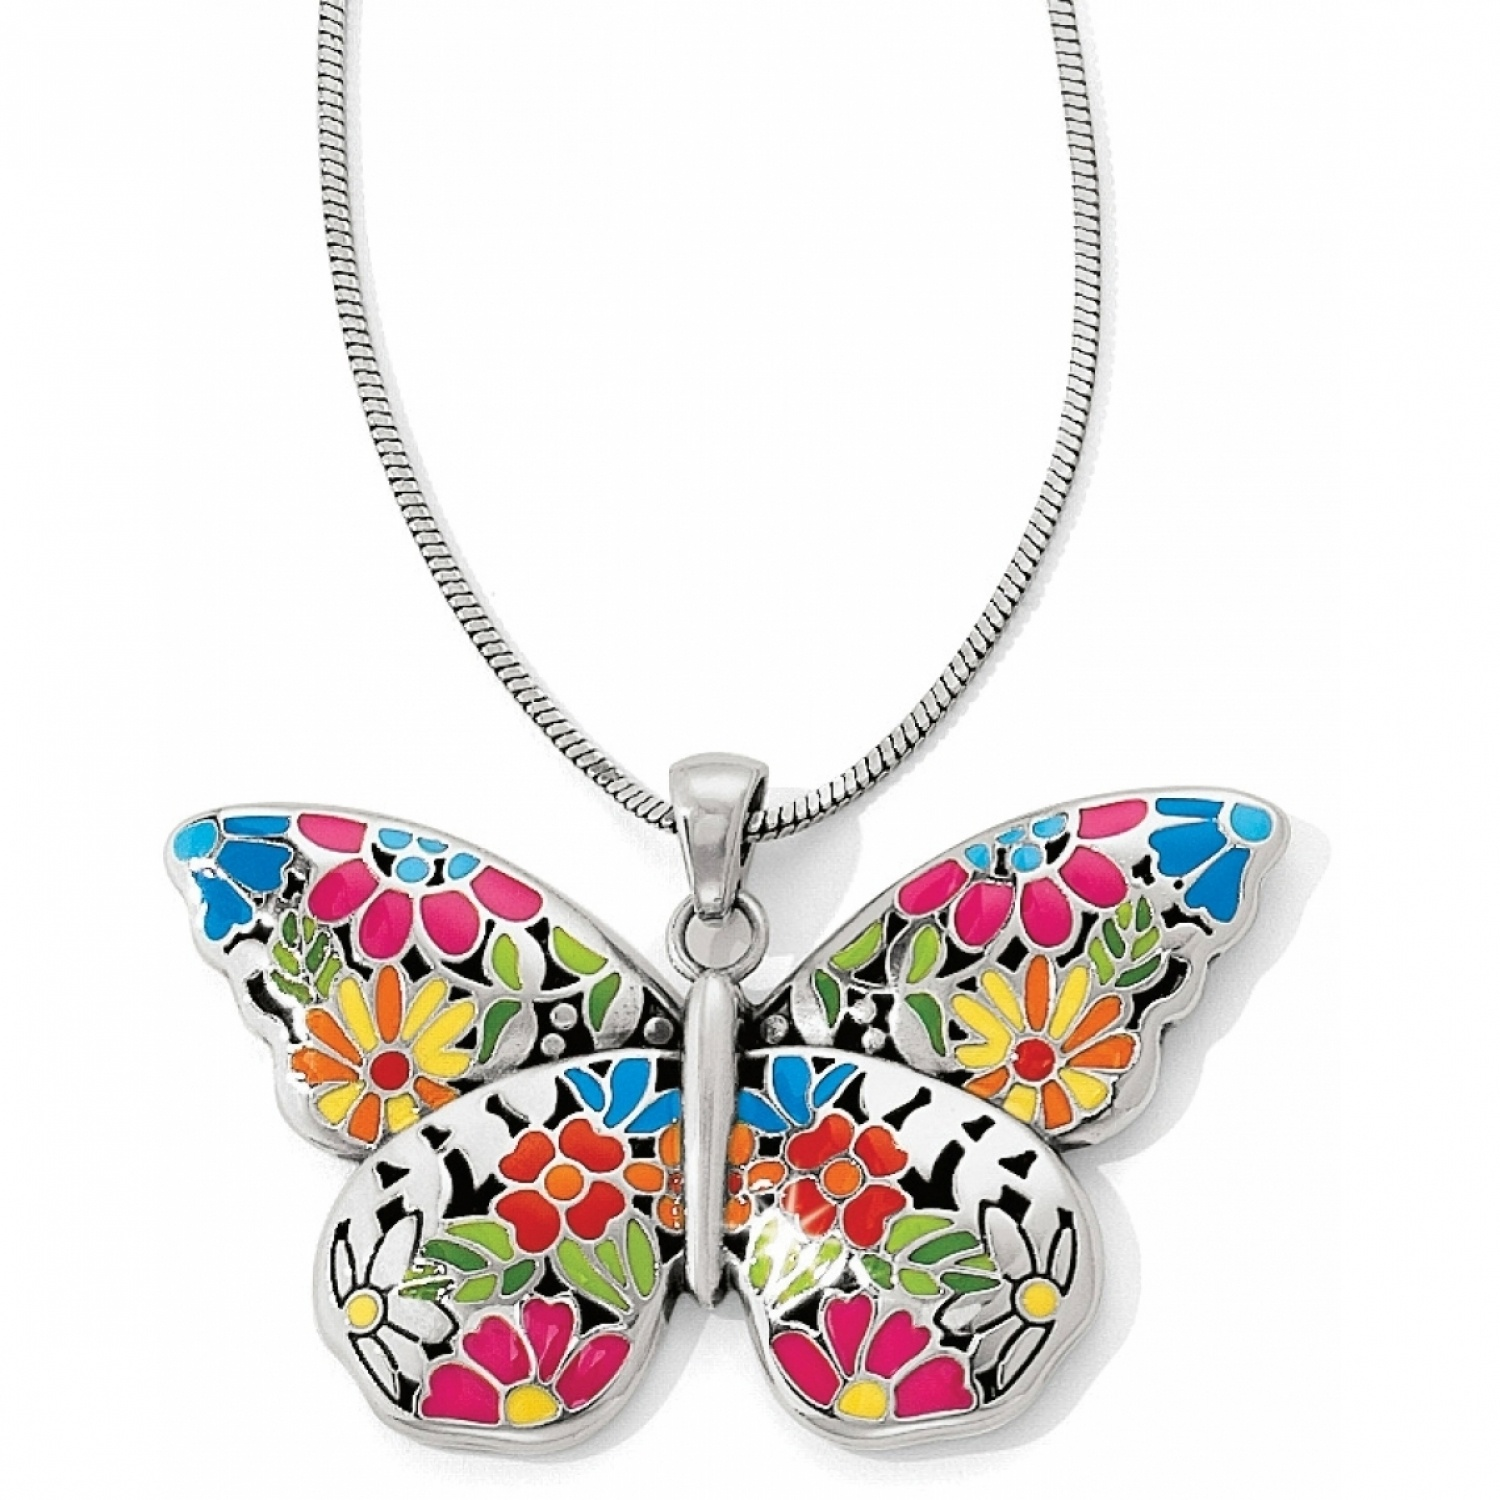 butterfly jewelry suncatcher convertible necklace nkyblph